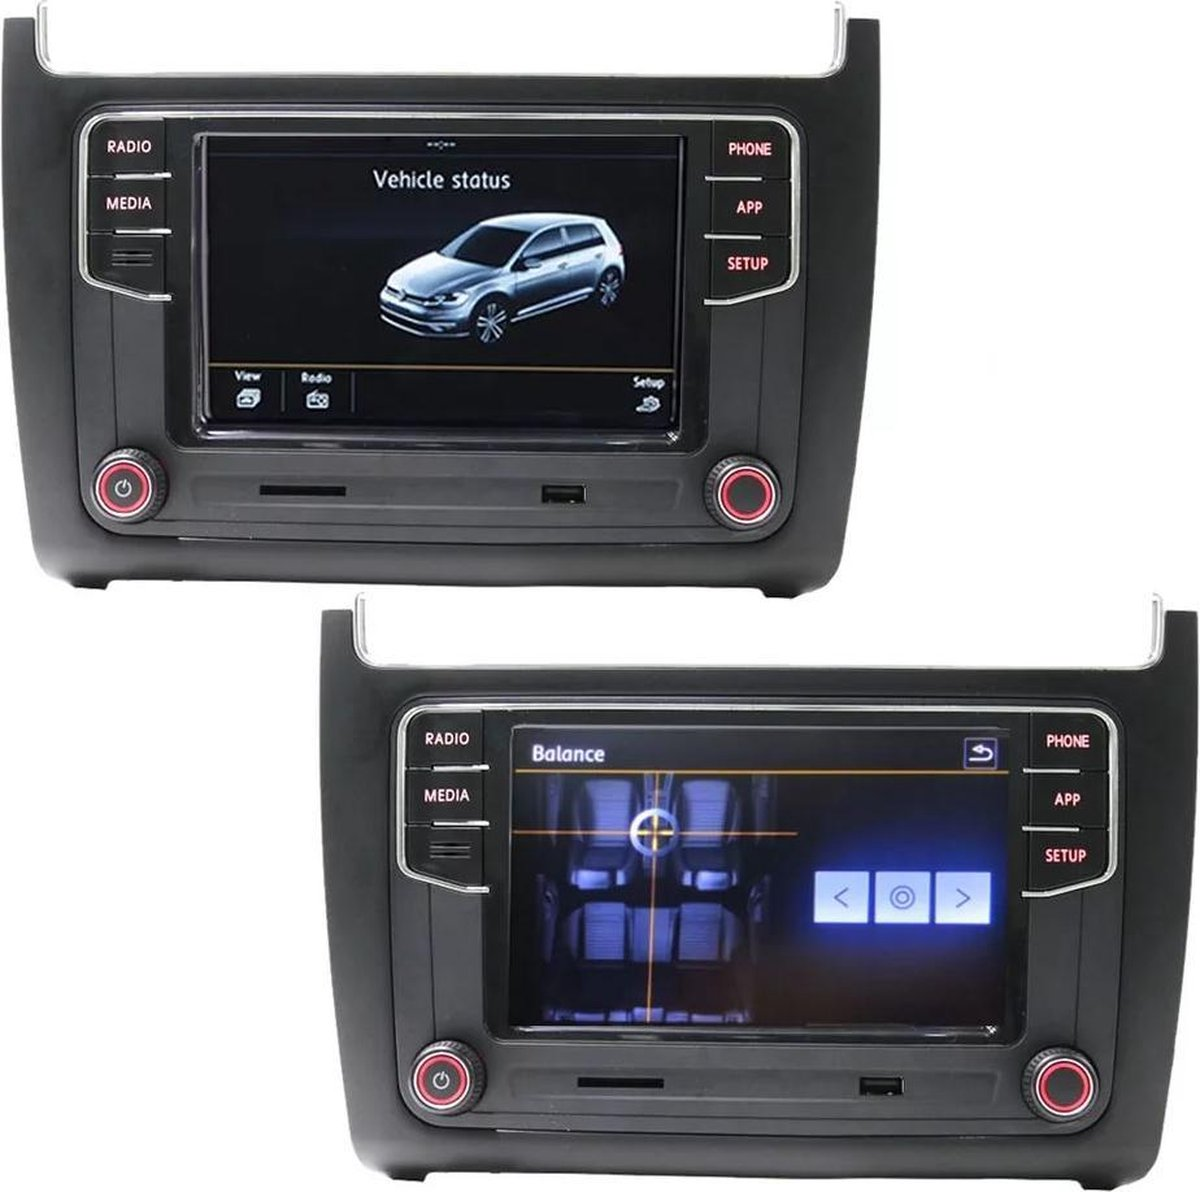 RCD360 CarPlay + Android Auto Volkswagen Polo 6c 2014-2018